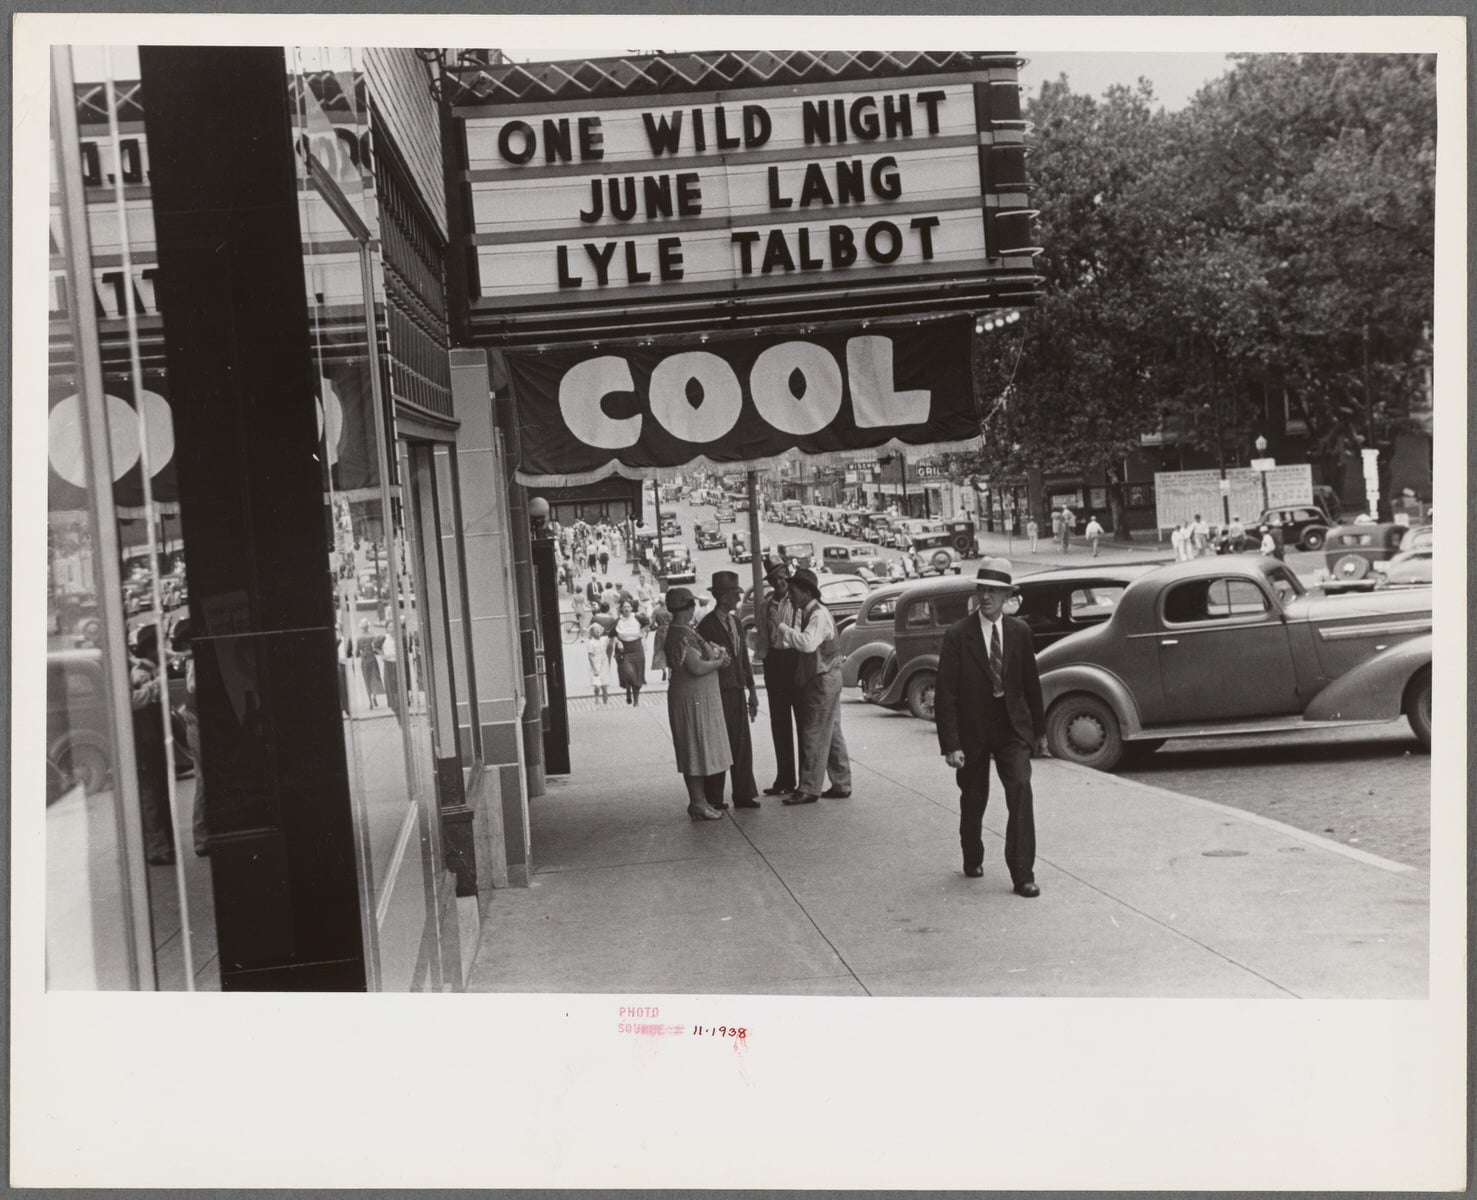 """The Miriam and Ira D. Wallach Division of Art, Prints and Photographs: Photography Collection, The New York Public Library. """"Street scene showing movie theater, probably in the vicinity of Lancaster, Ohio"""" • PhotoThe New York Public Library Digital Collections. 1938 (Public Domain)"""